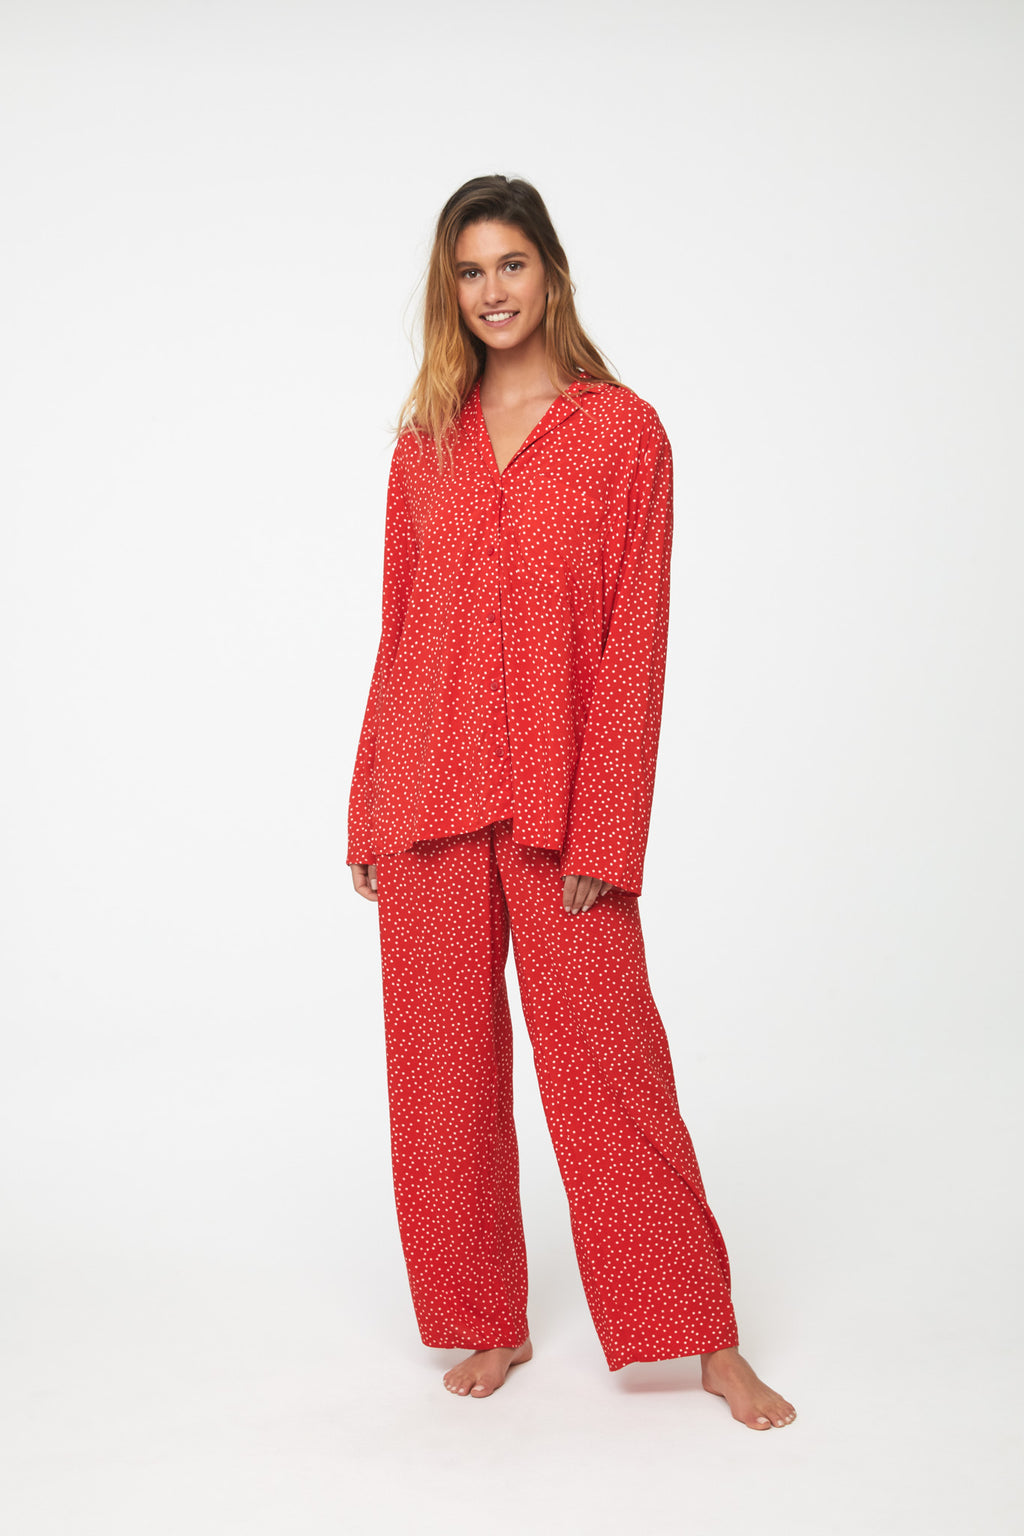 AYLAH PAJAMA SET - RED POLKA DOT